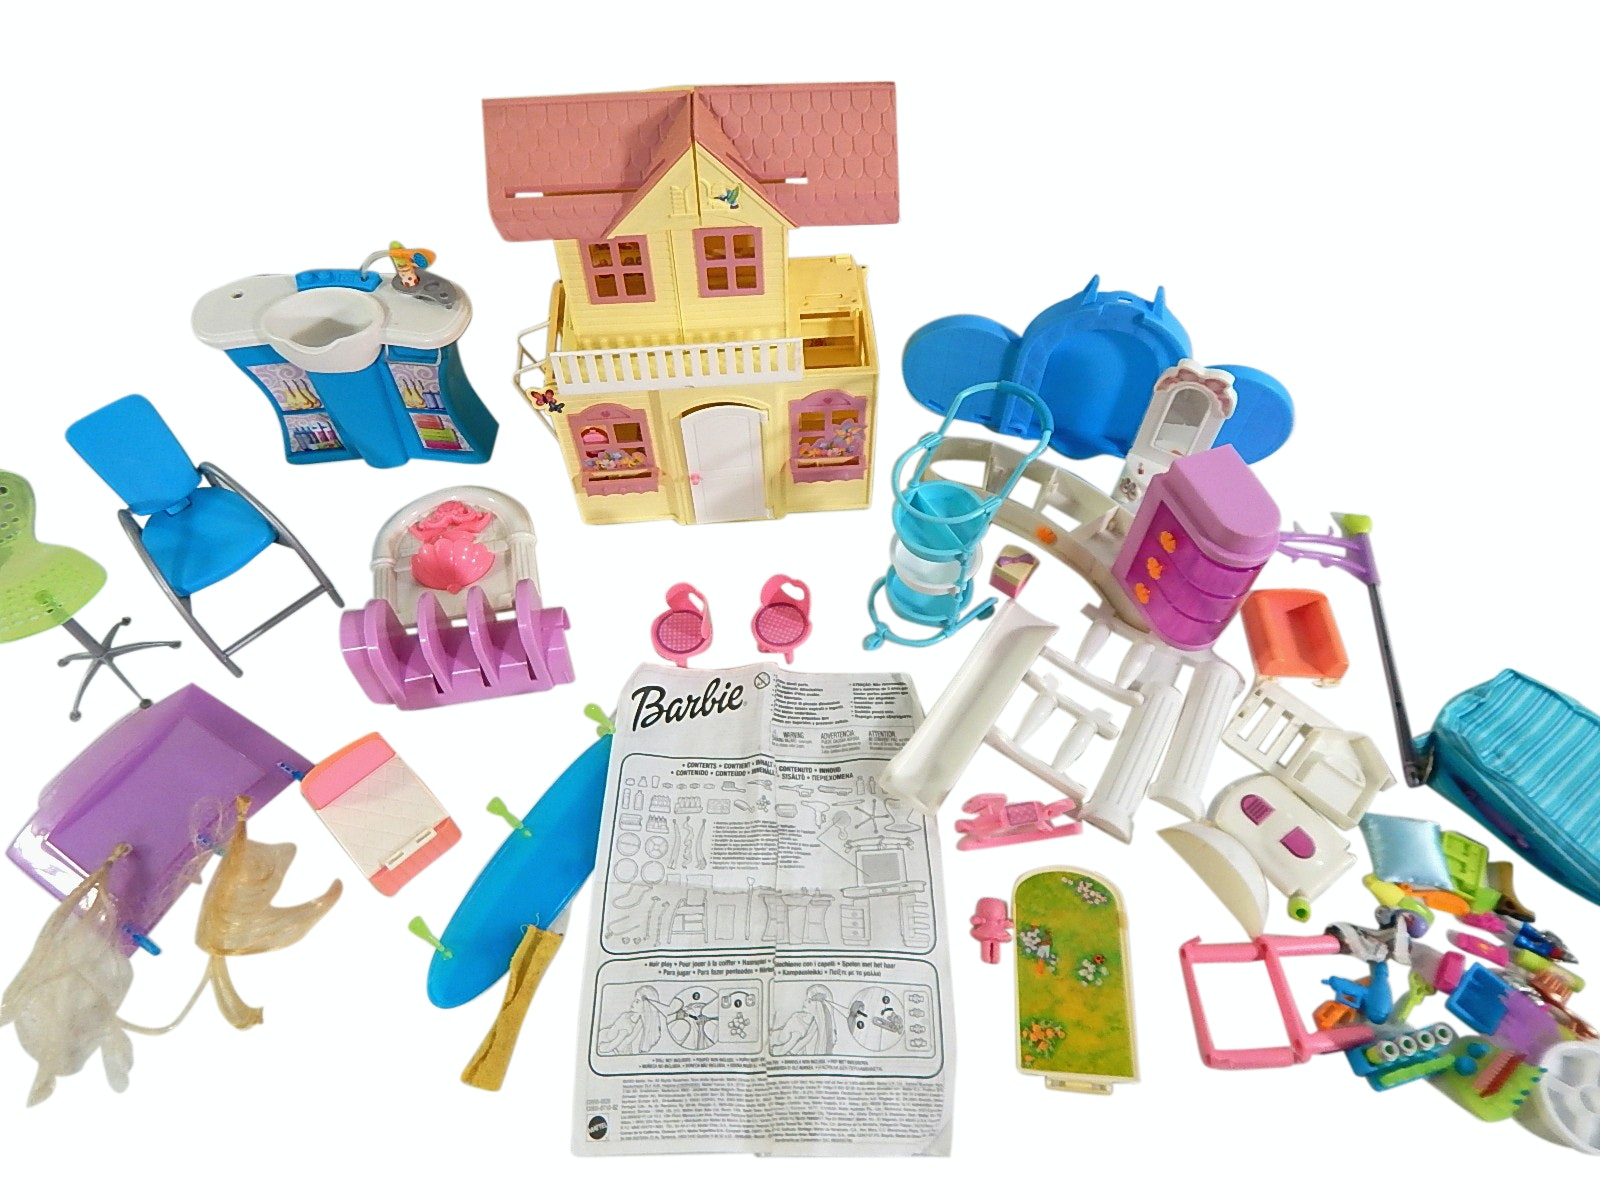 1998 Mattel Victorian Doll House and Barbie Salon Accessories